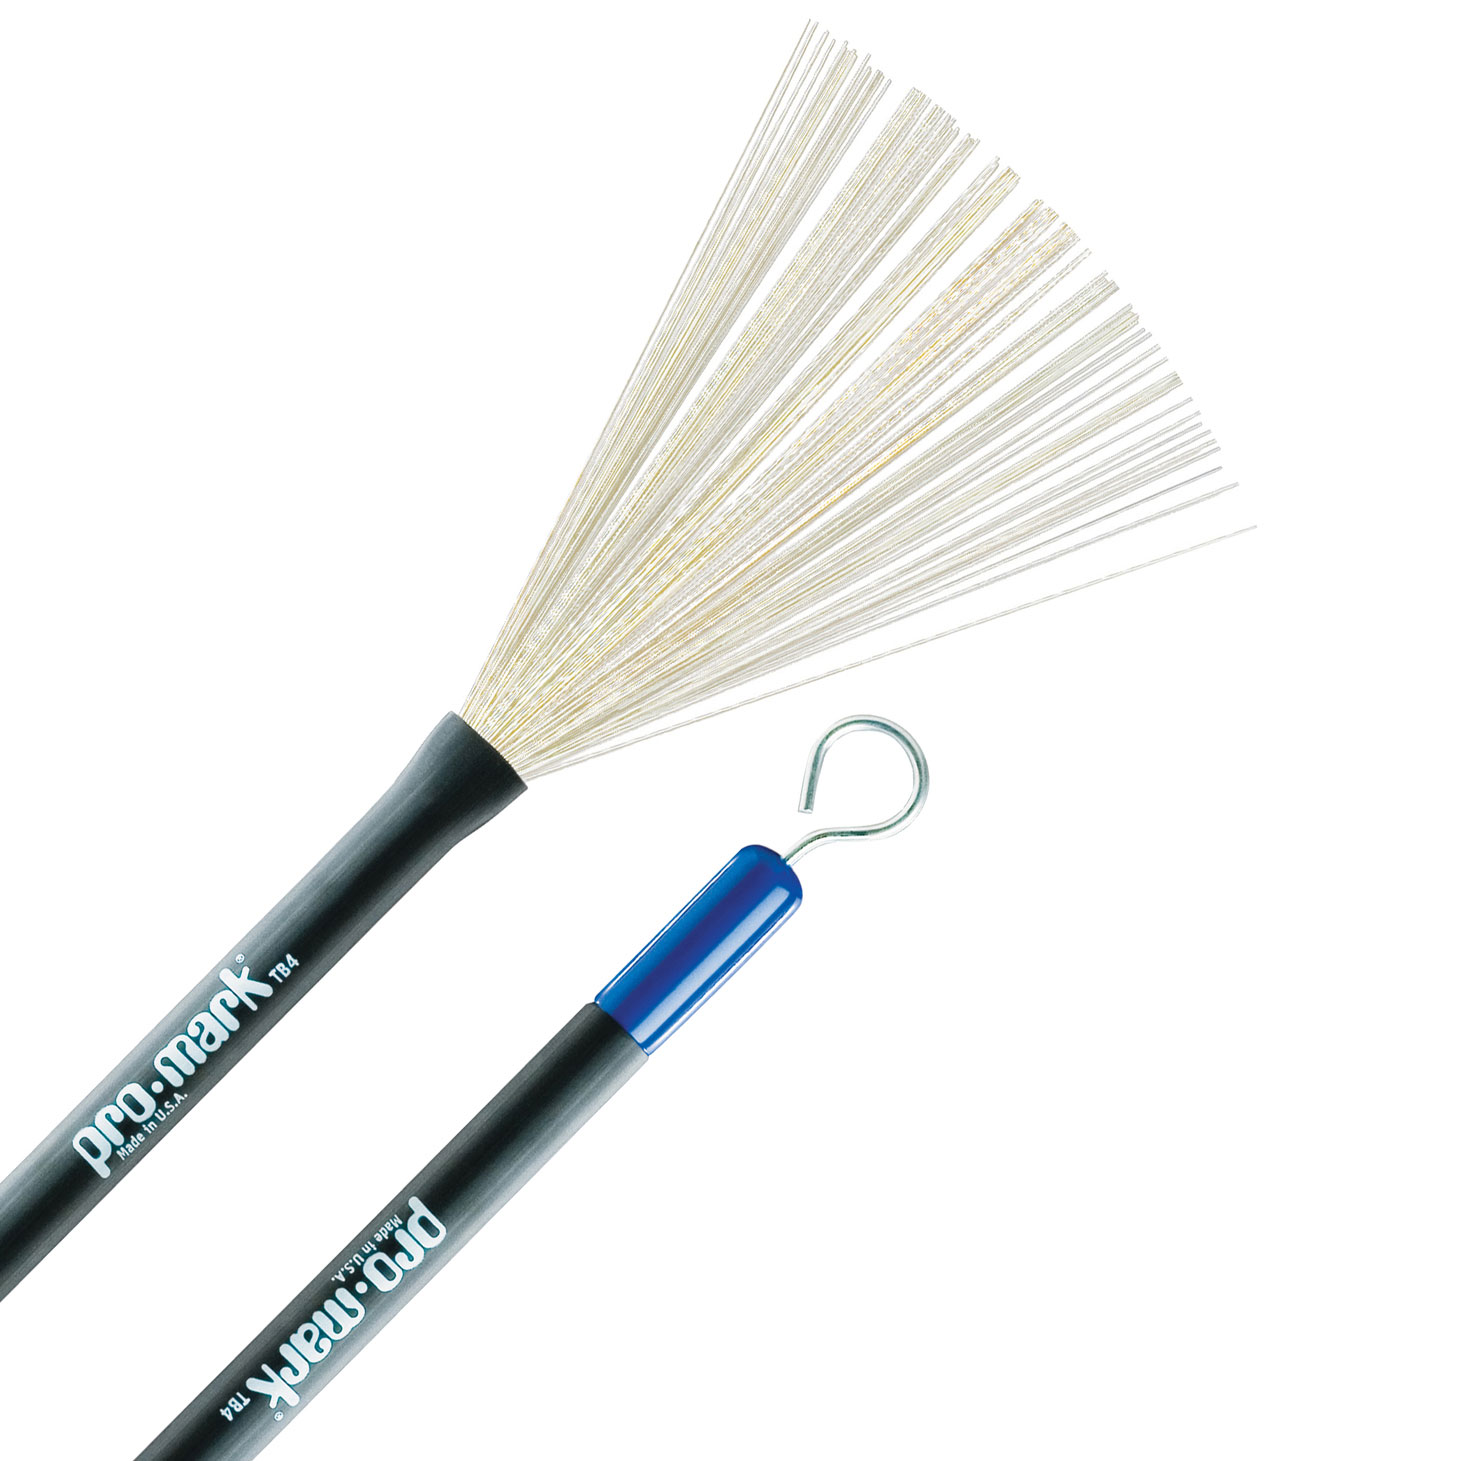 Promark Classic Telescopic Wire Brushes